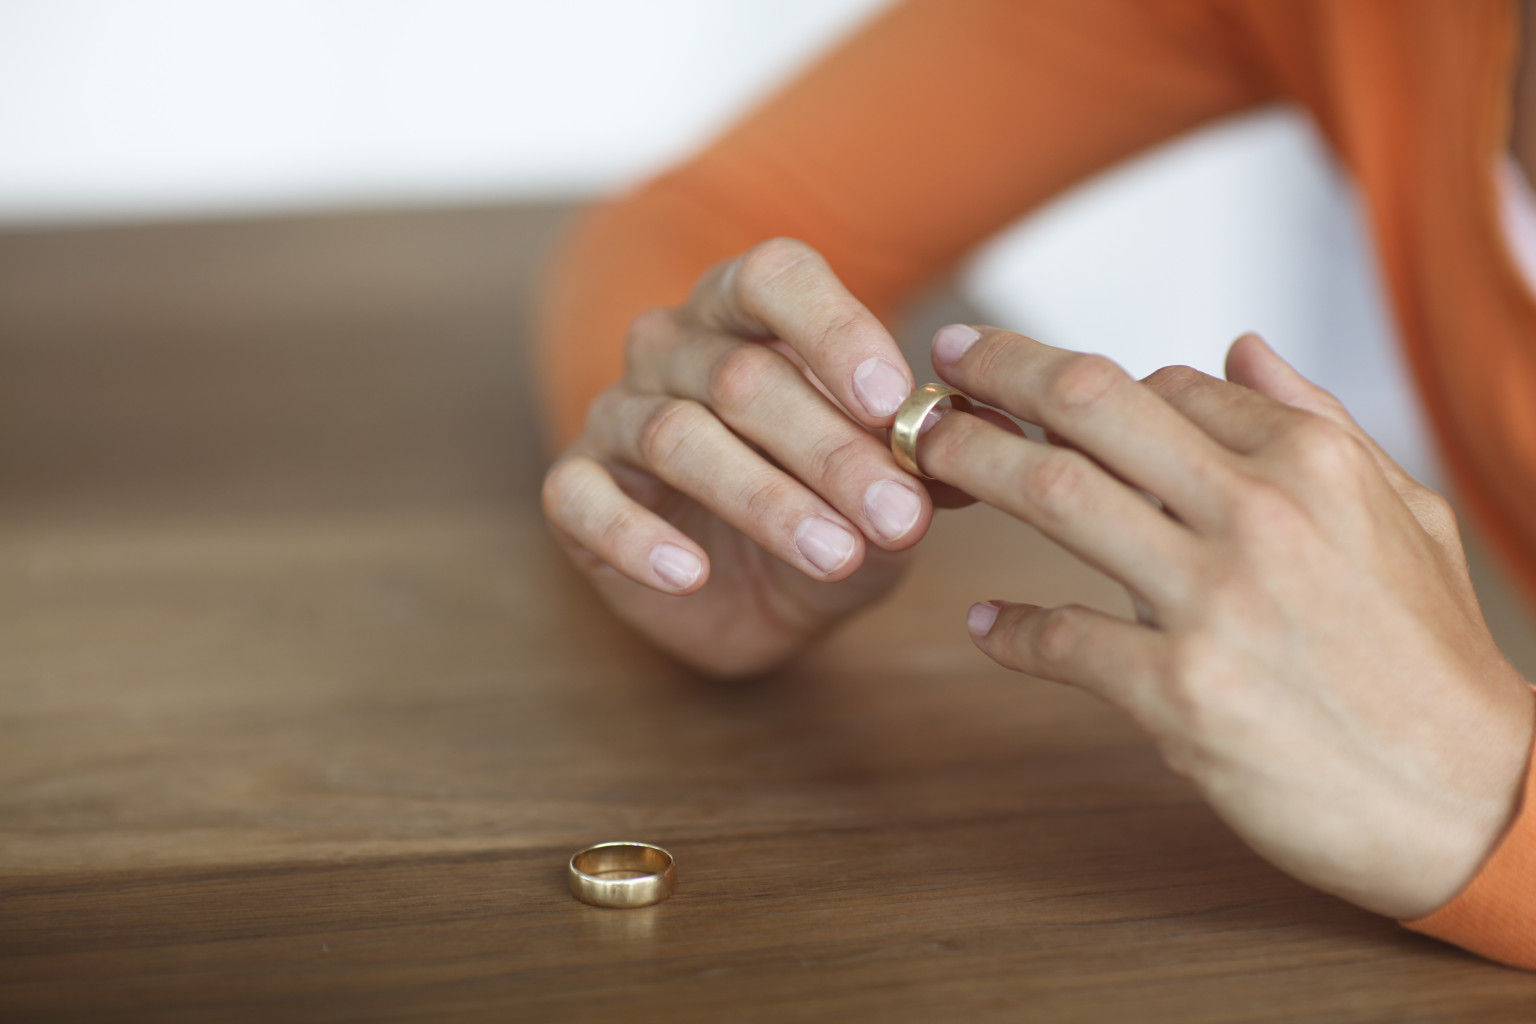 Mid adult woman toying with gold wedding ring on finger